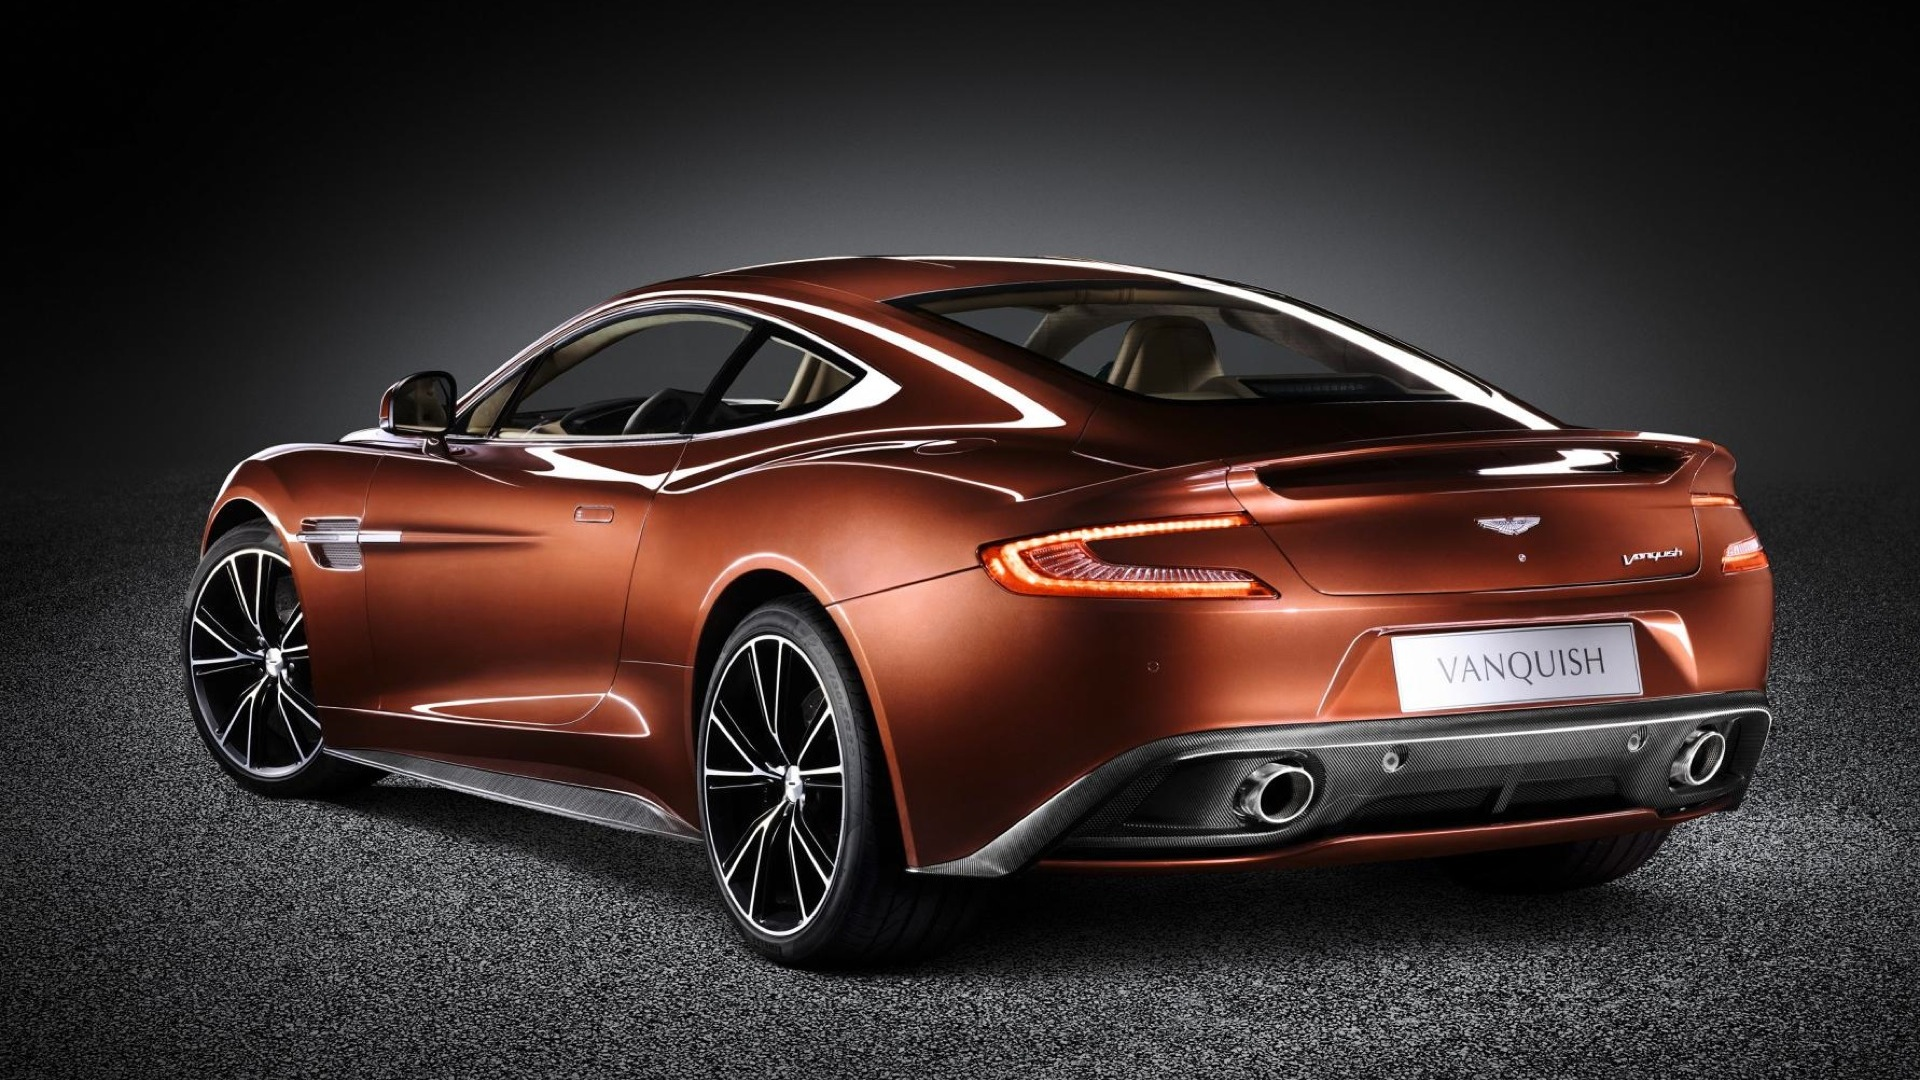 Aston Martin Vanquish 2013 Price Mileage Reviews Specification